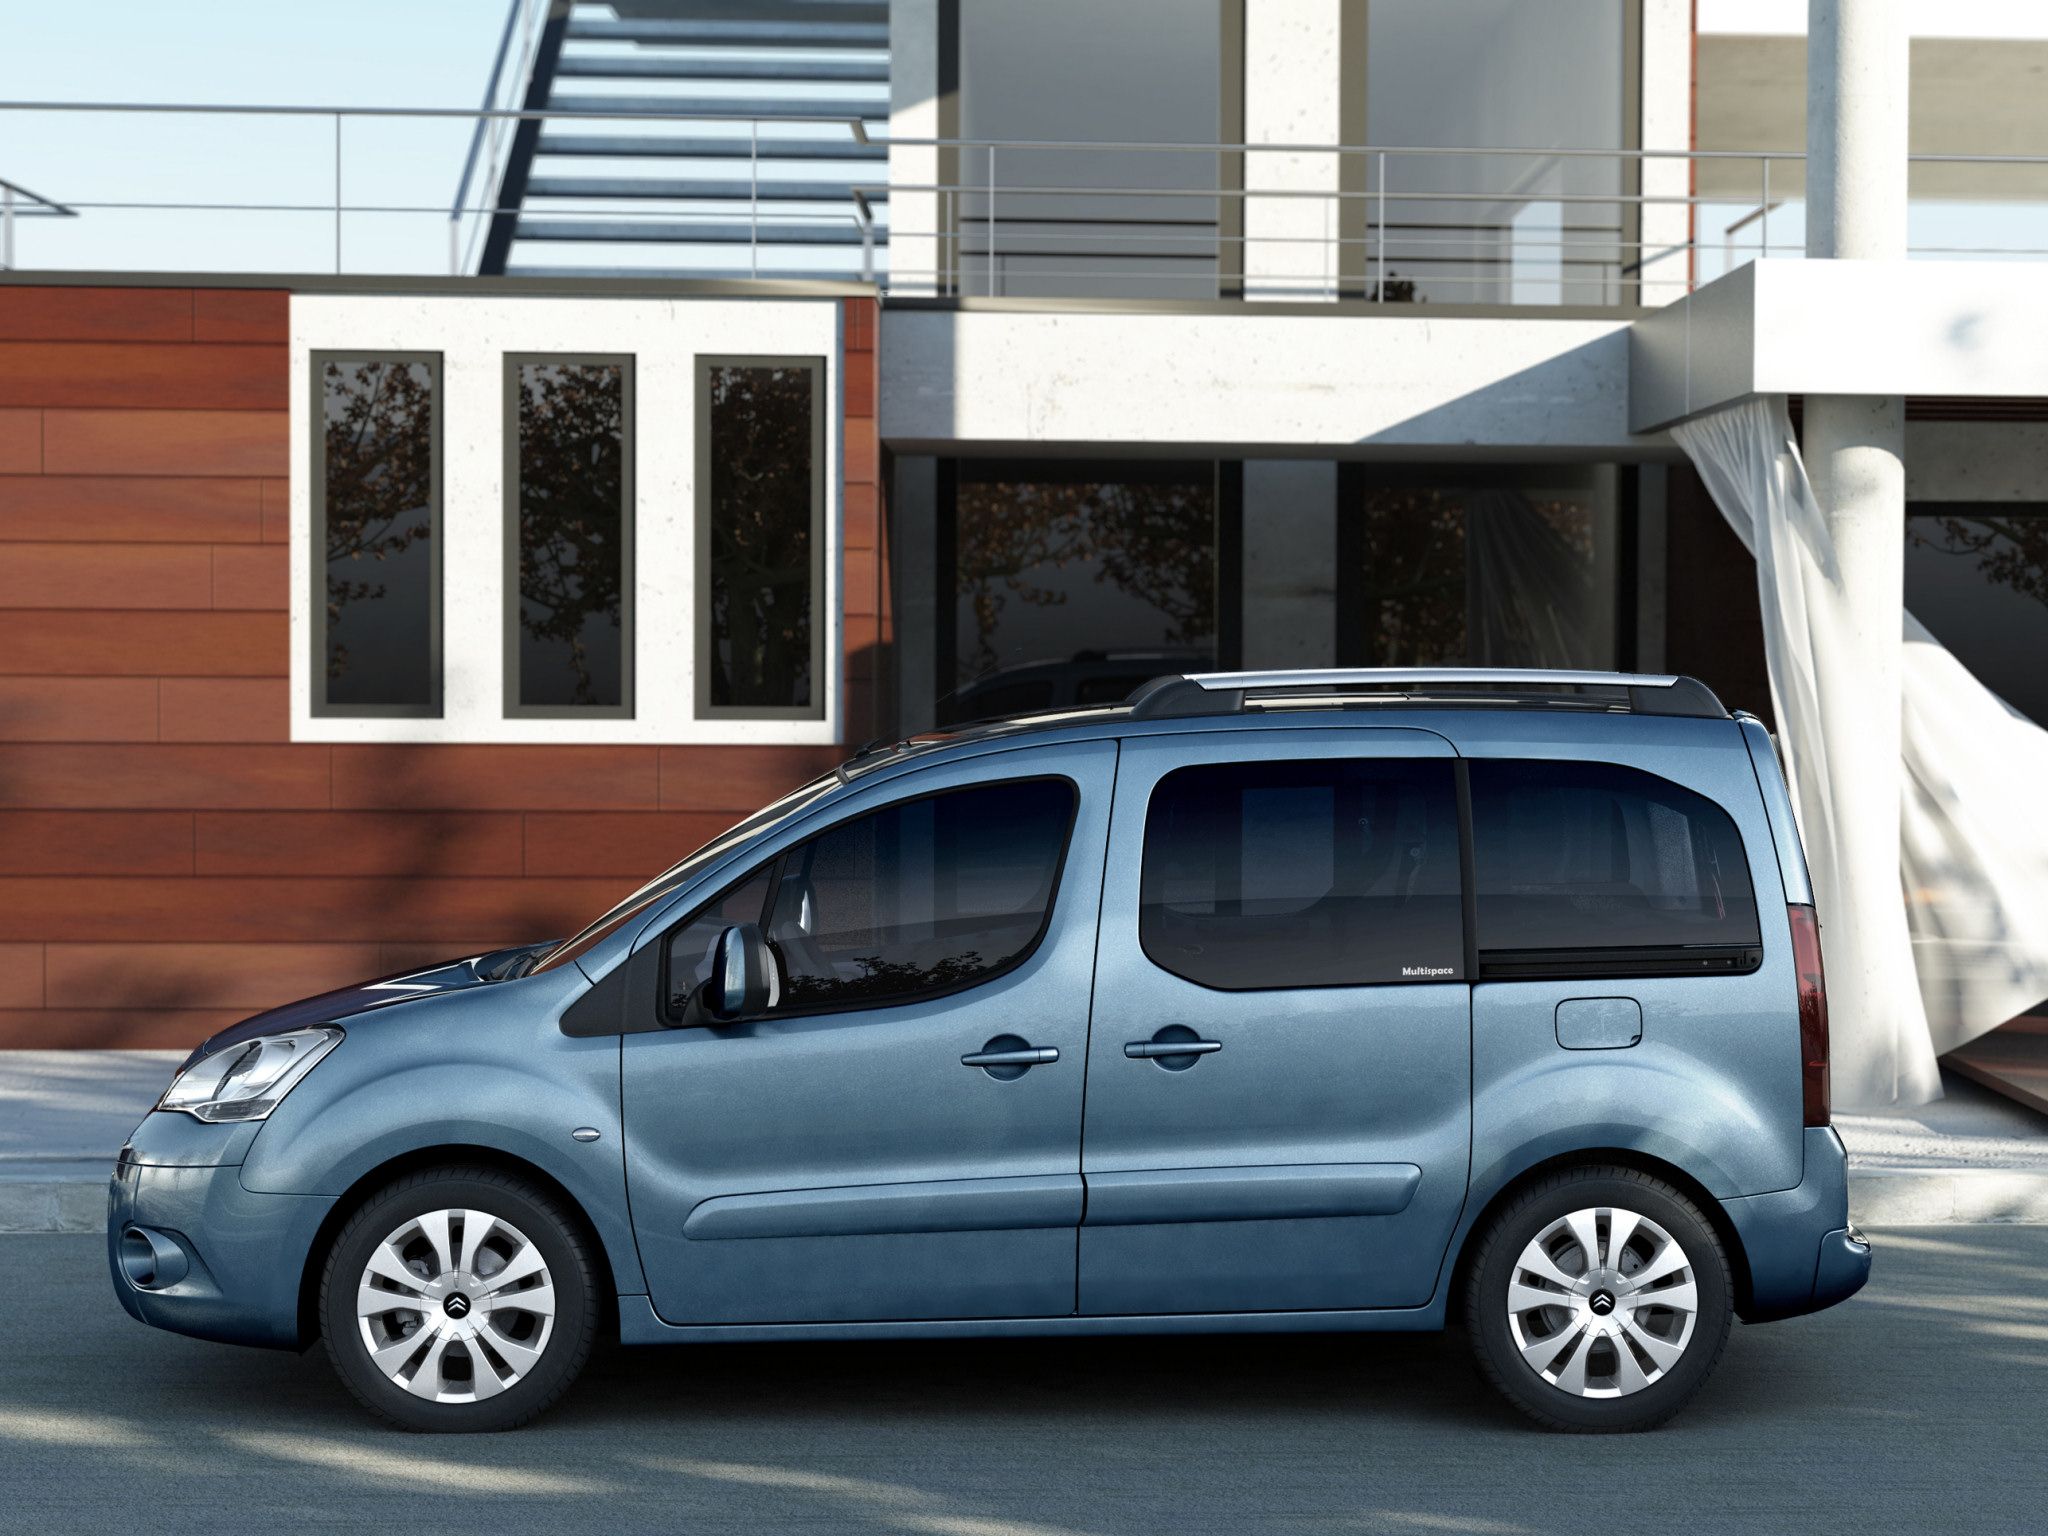 citroen berlingo 2008 citroen berlingo 2008 photo 04 car in pictures car photo gallery. Black Bedroom Furniture Sets. Home Design Ideas